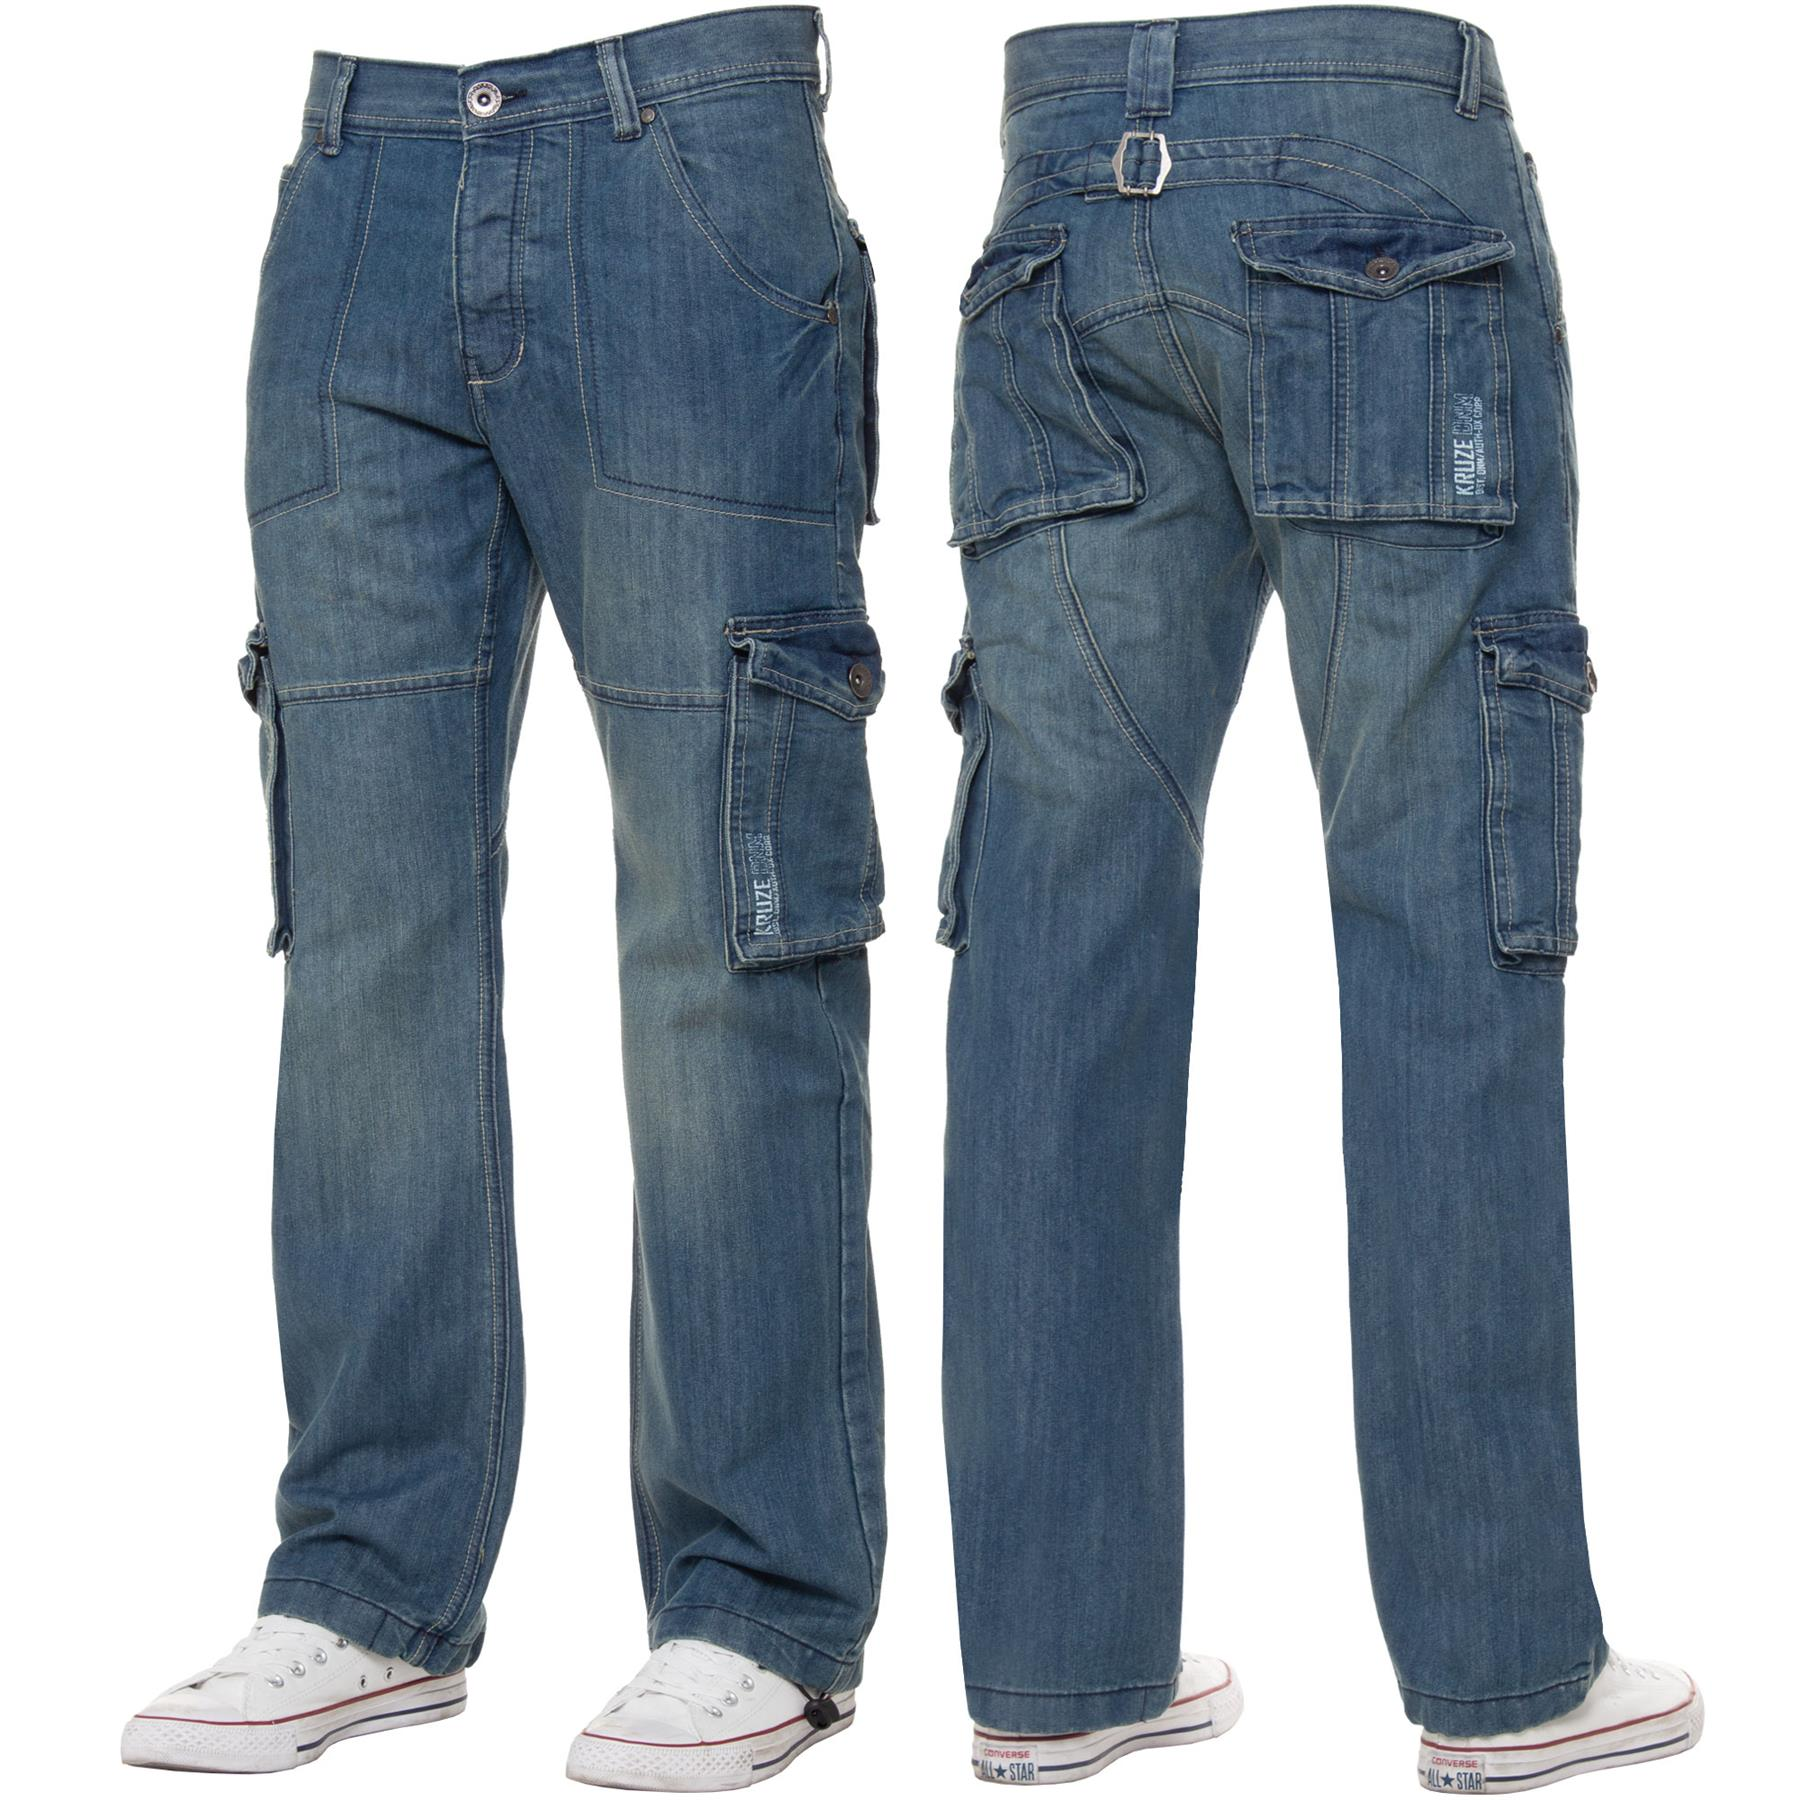 Kruze-Mens-Cargo-Combat-Jeans-Casual-Work-Denim-Pants-Big-Tall-All-Waist-Sizes thumbnail 9